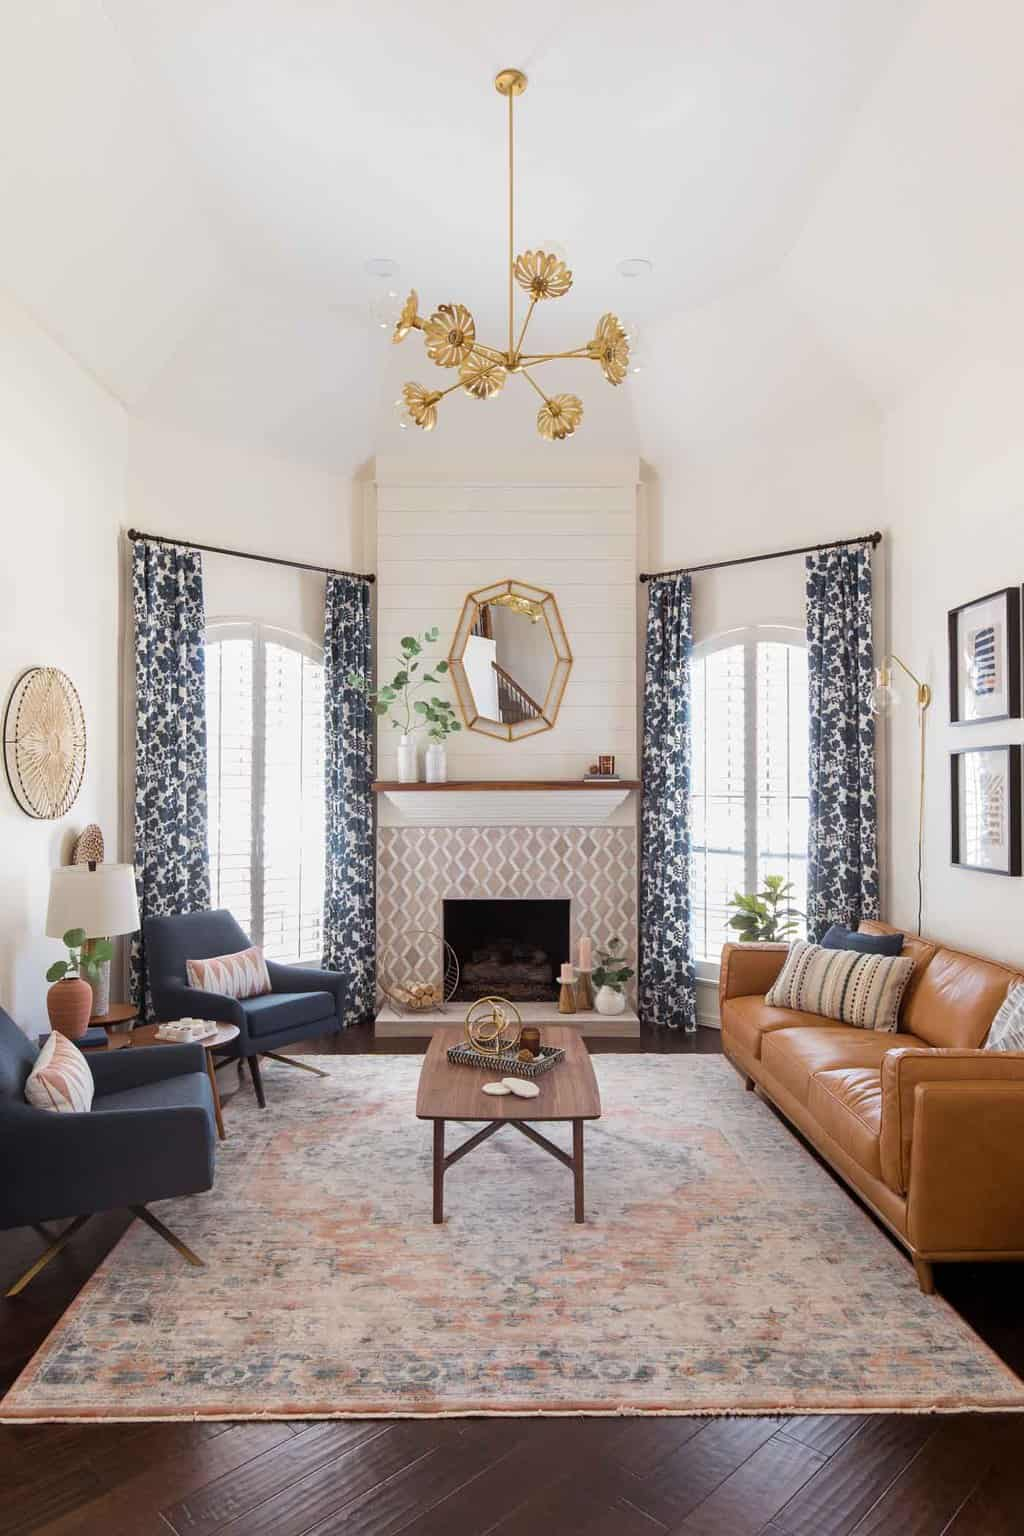 after photo of the finished living room makeover by top Houston lifestyle blogger Ashley Rose of Sugar & Cloth